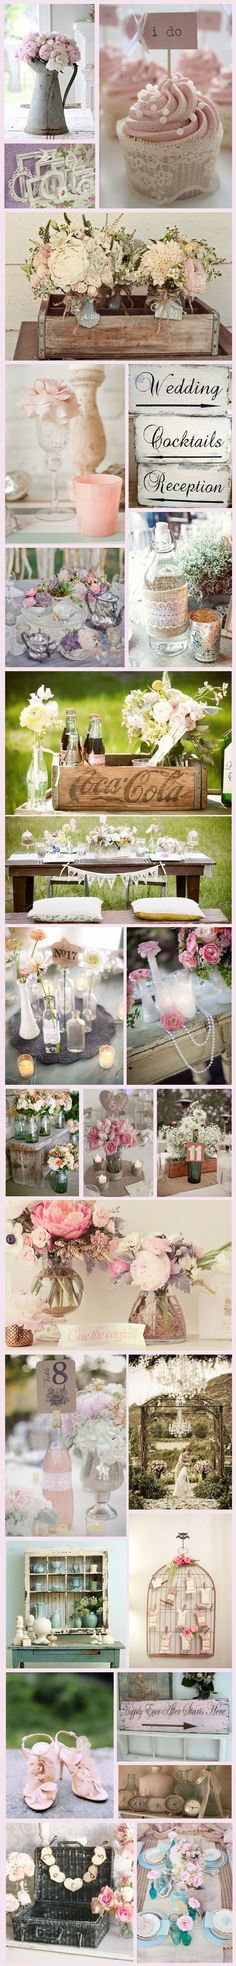 Vintage Themed Ideas. So pretty in pink.